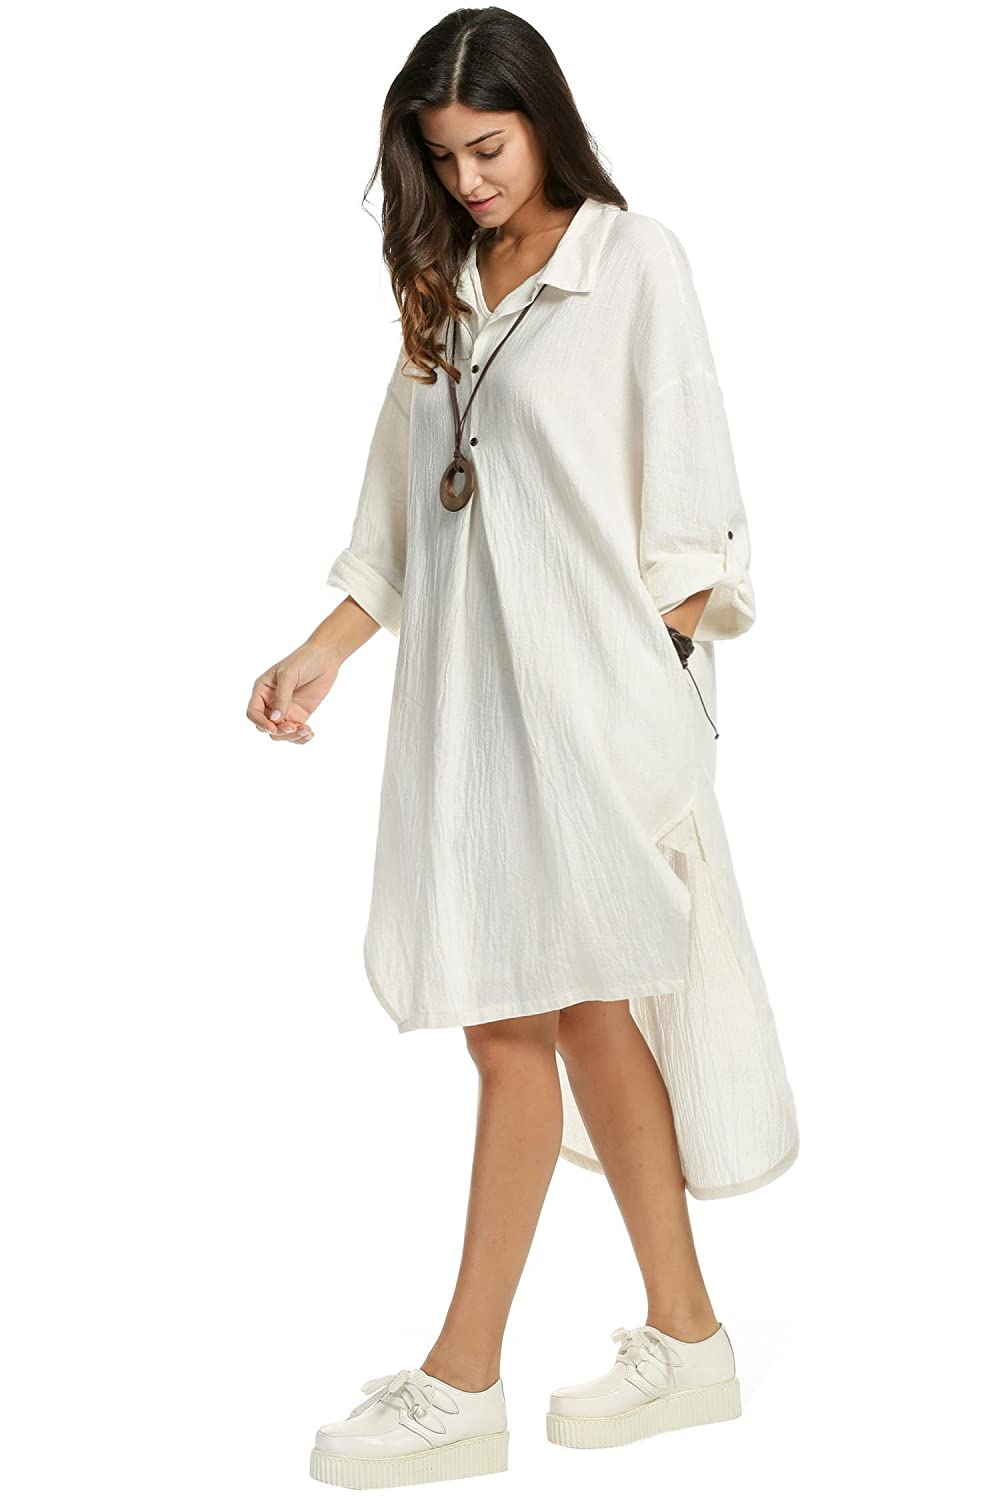 d4e638a585 Diaper Shirt Dresses for Women Plus Size Long Sleeve White Linen Dress Maxi  Dresses for Women with Pockets Dresses at Amazon Women s Clothing store